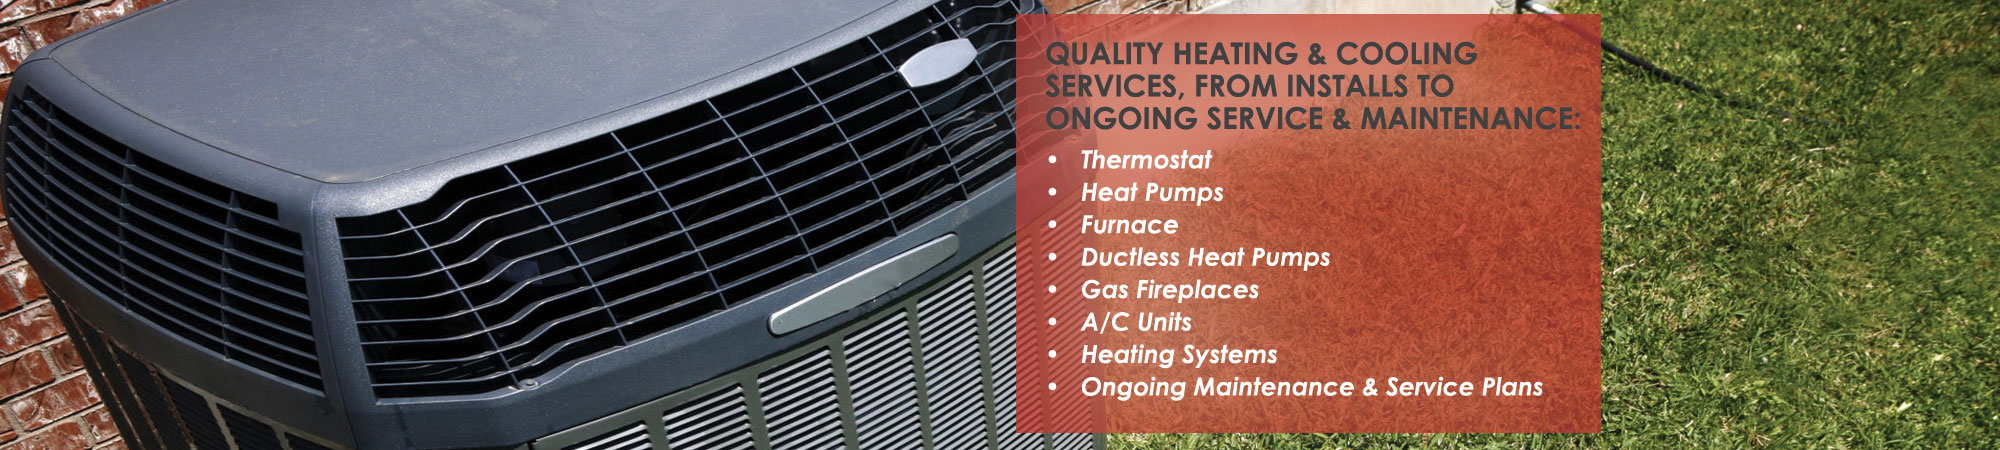 Slide-2-Services-All-Hours-Heating-and-Cooling